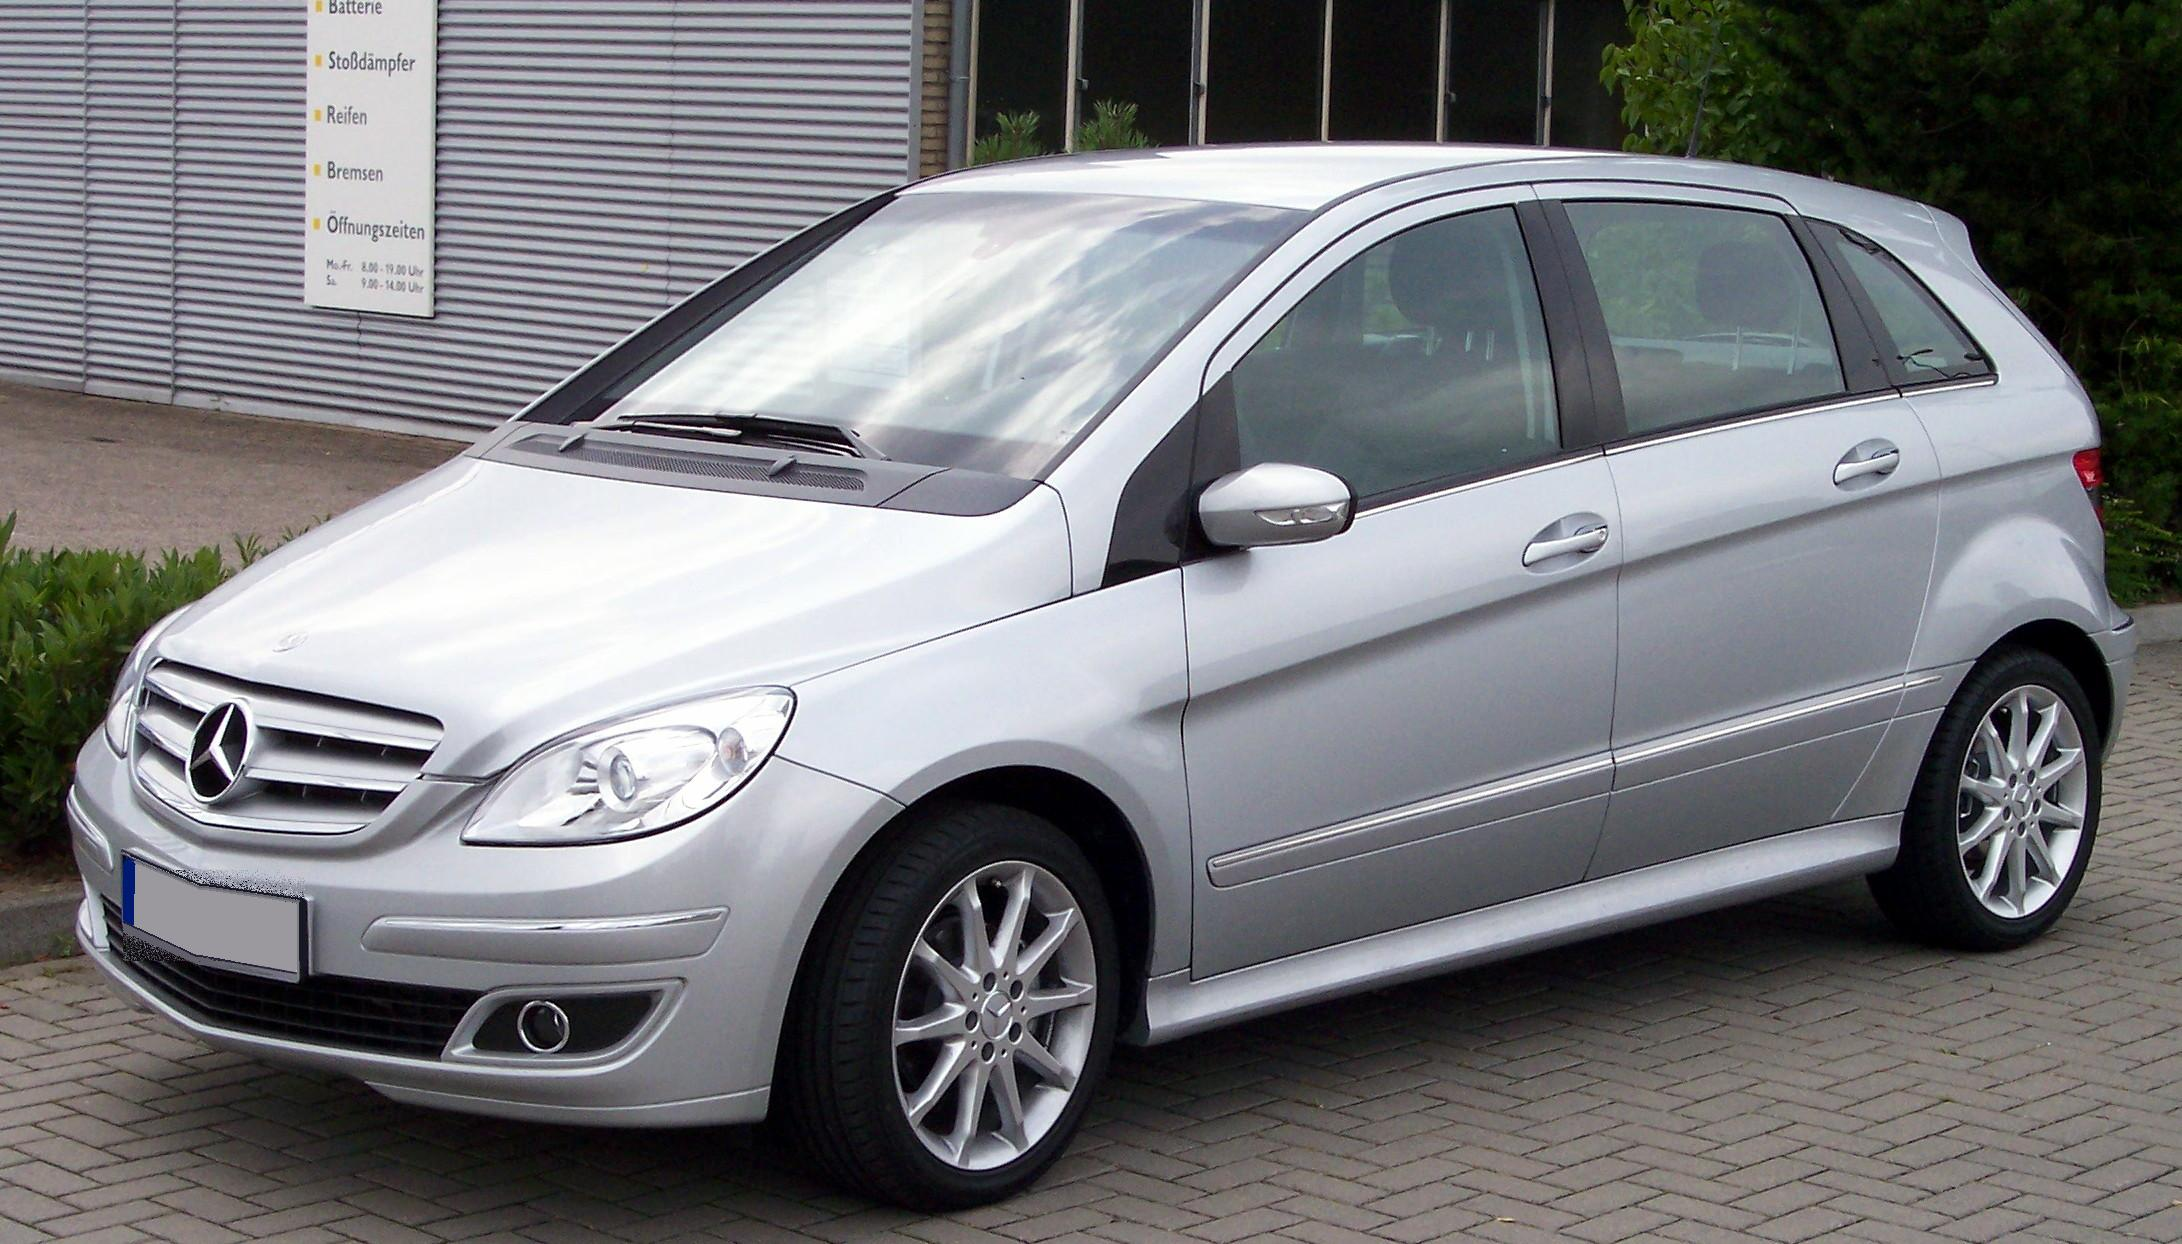 mercedes-benz a 170-pic. 1